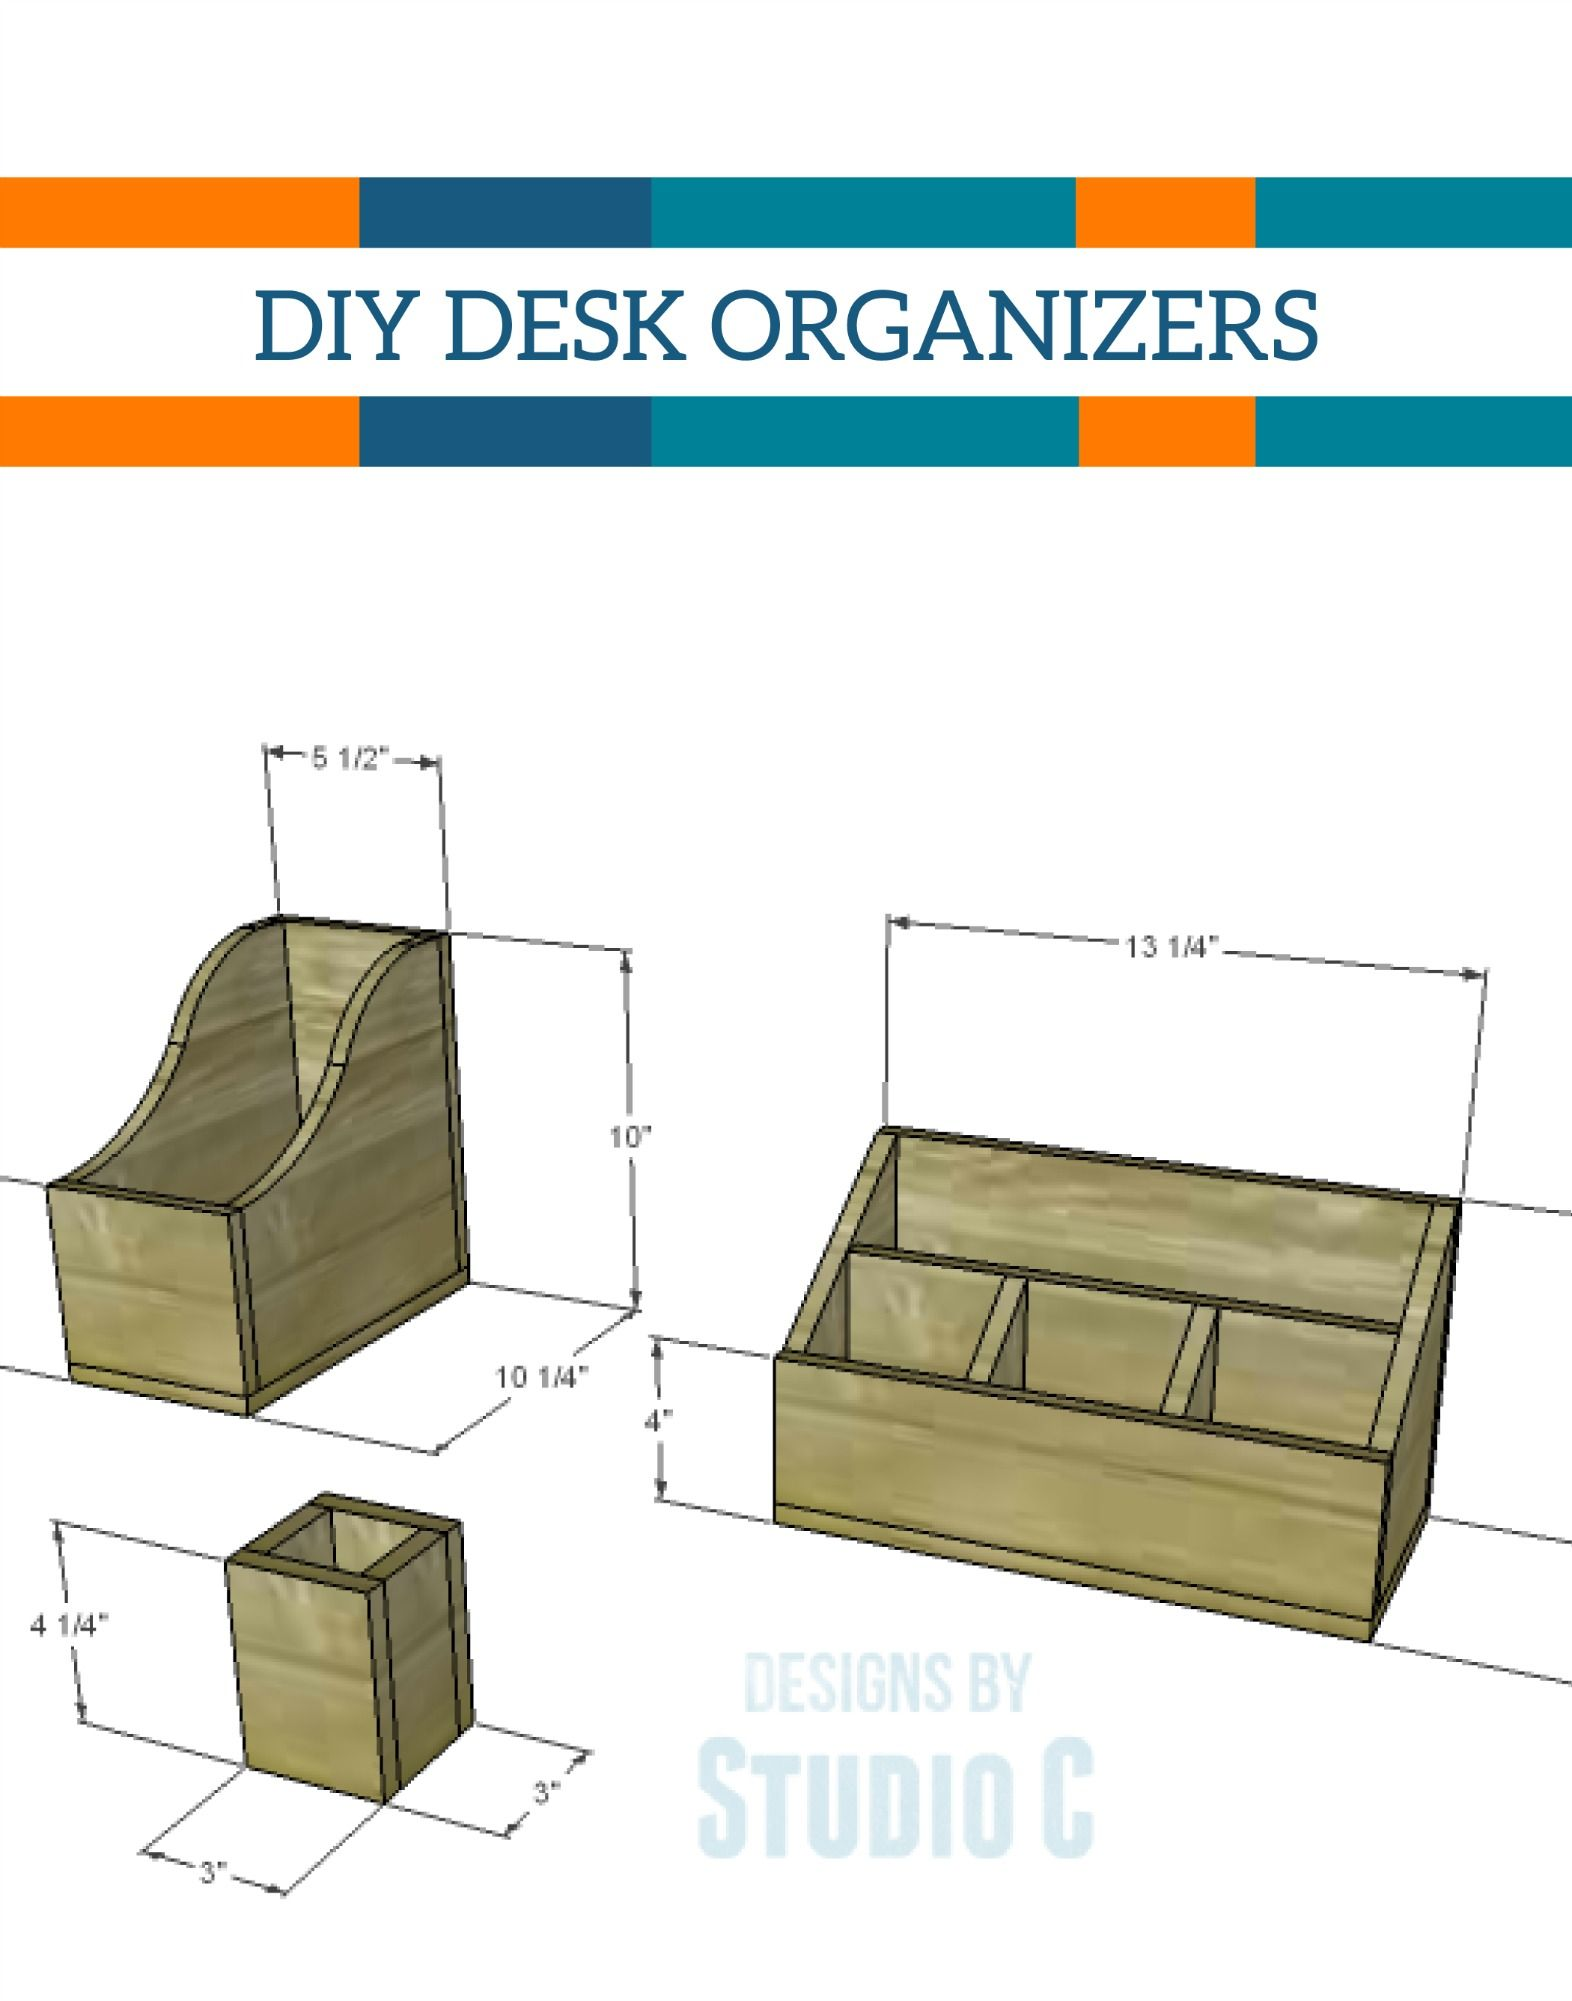 make your own wooden desk organizers for your office with this